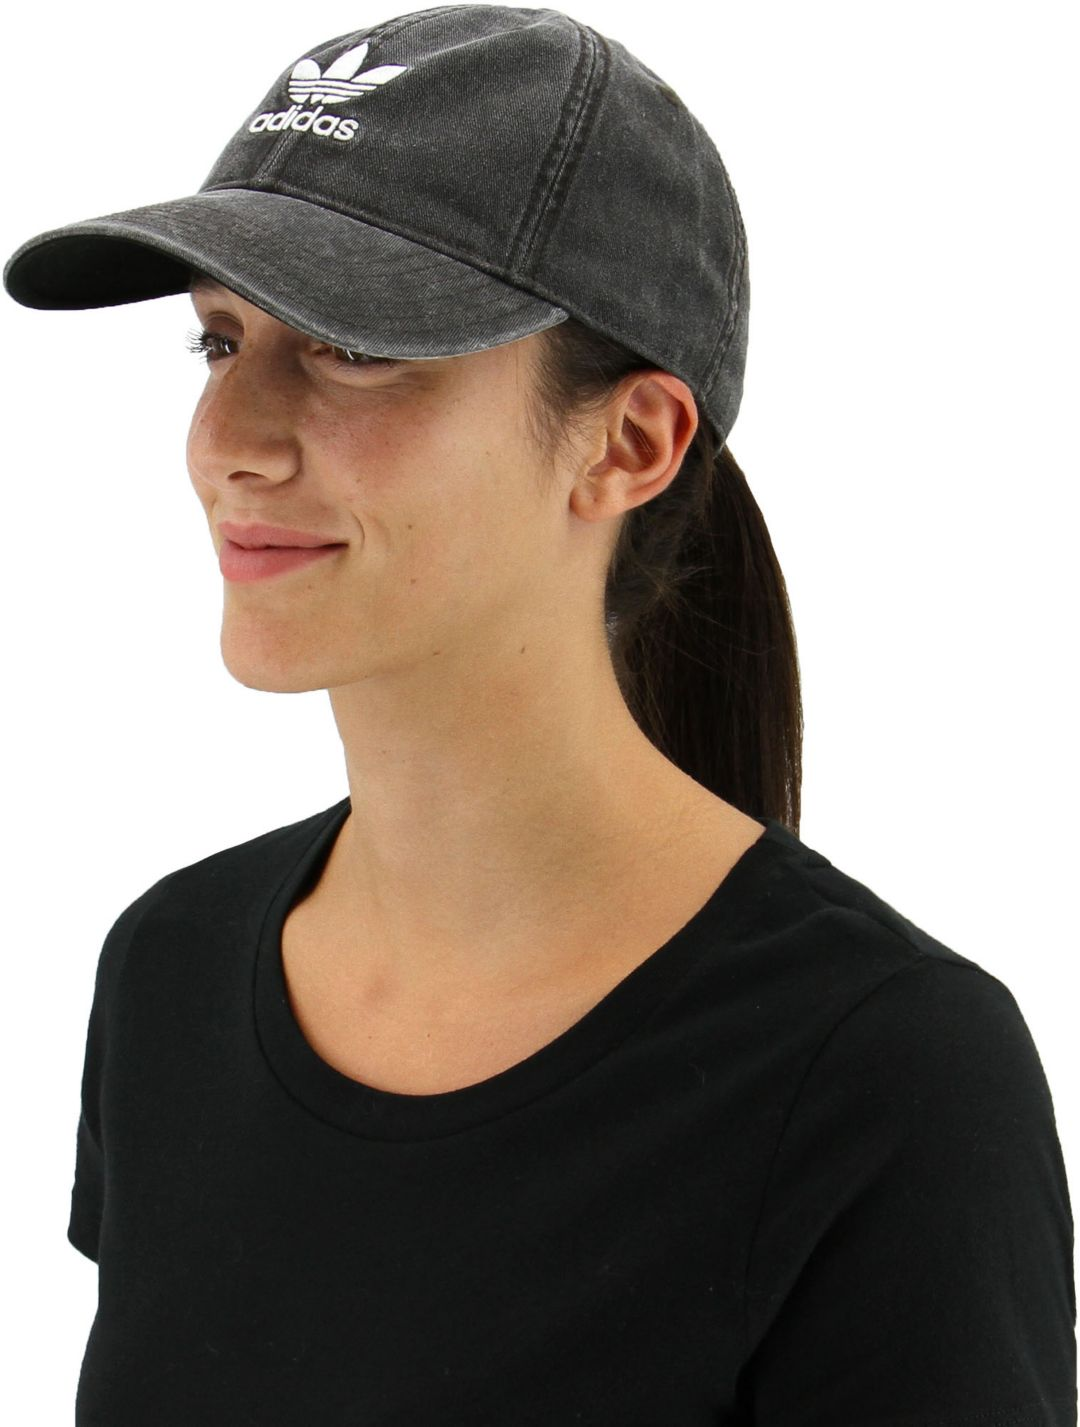 60e9aa3f adidas Originals Women's Relaxed Strapback Hat | DICK'S Sporting Goods